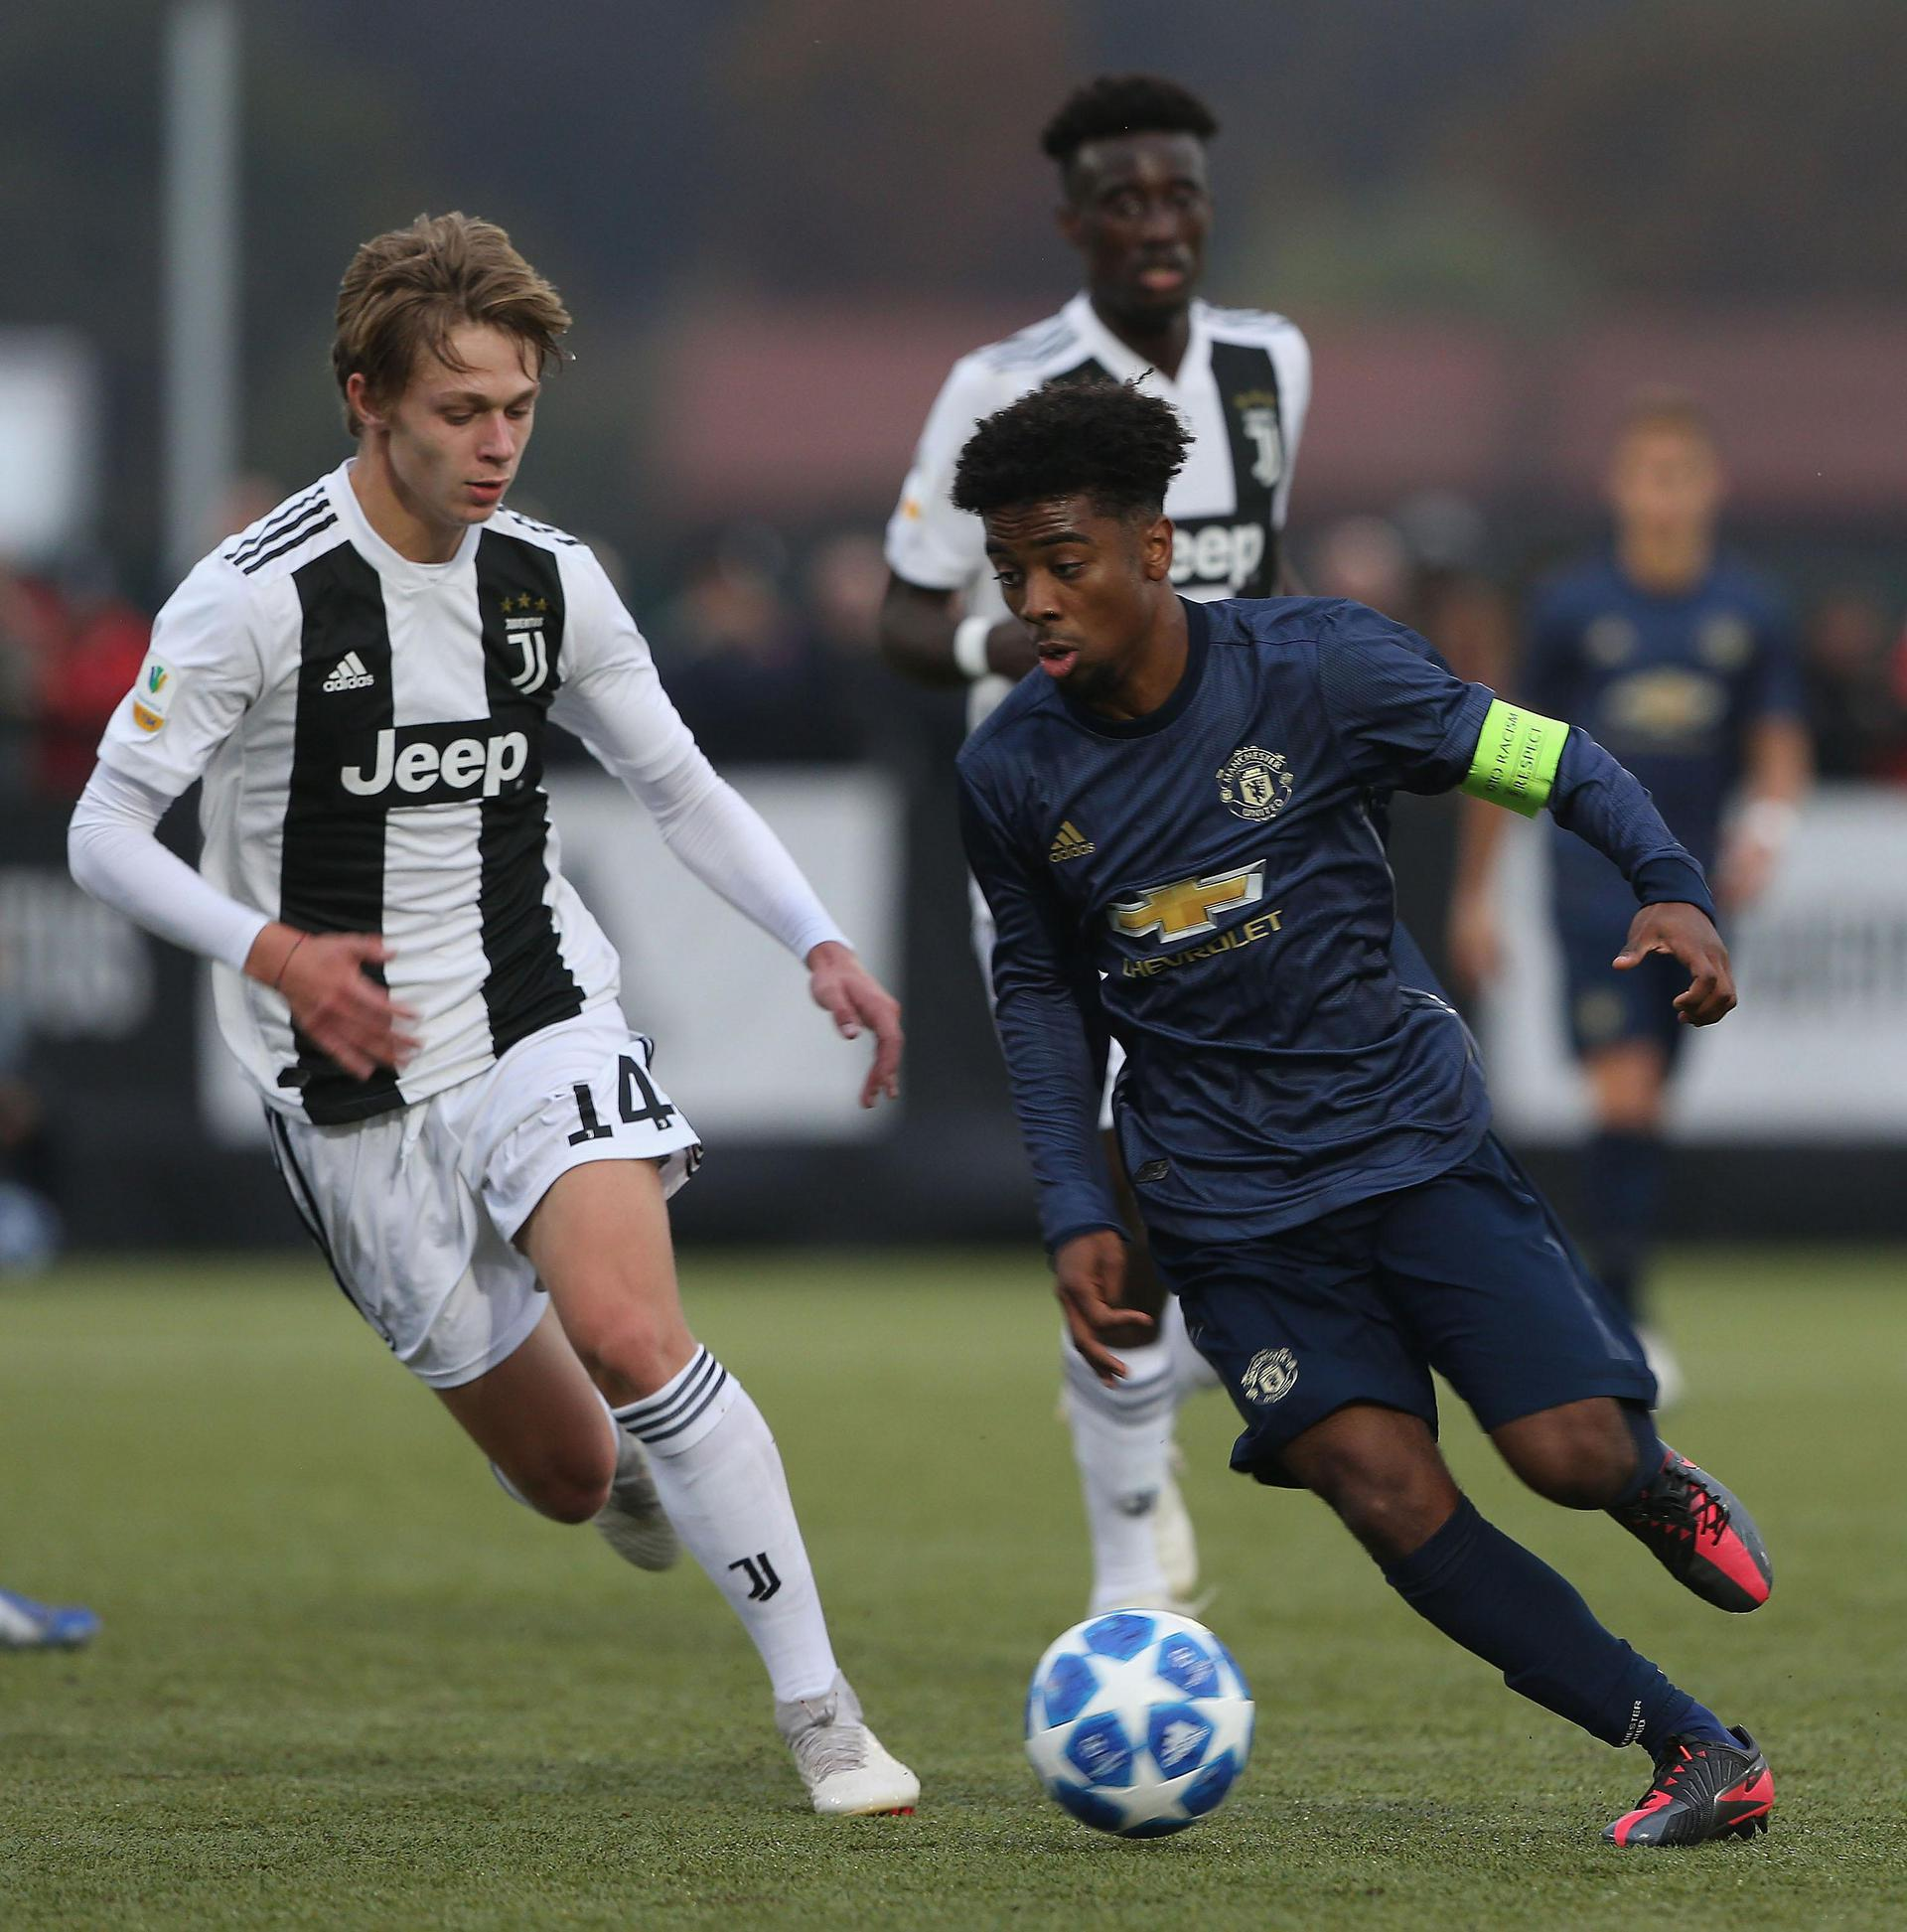 Angel Gomes in UEFA Youth League action against Juventus.